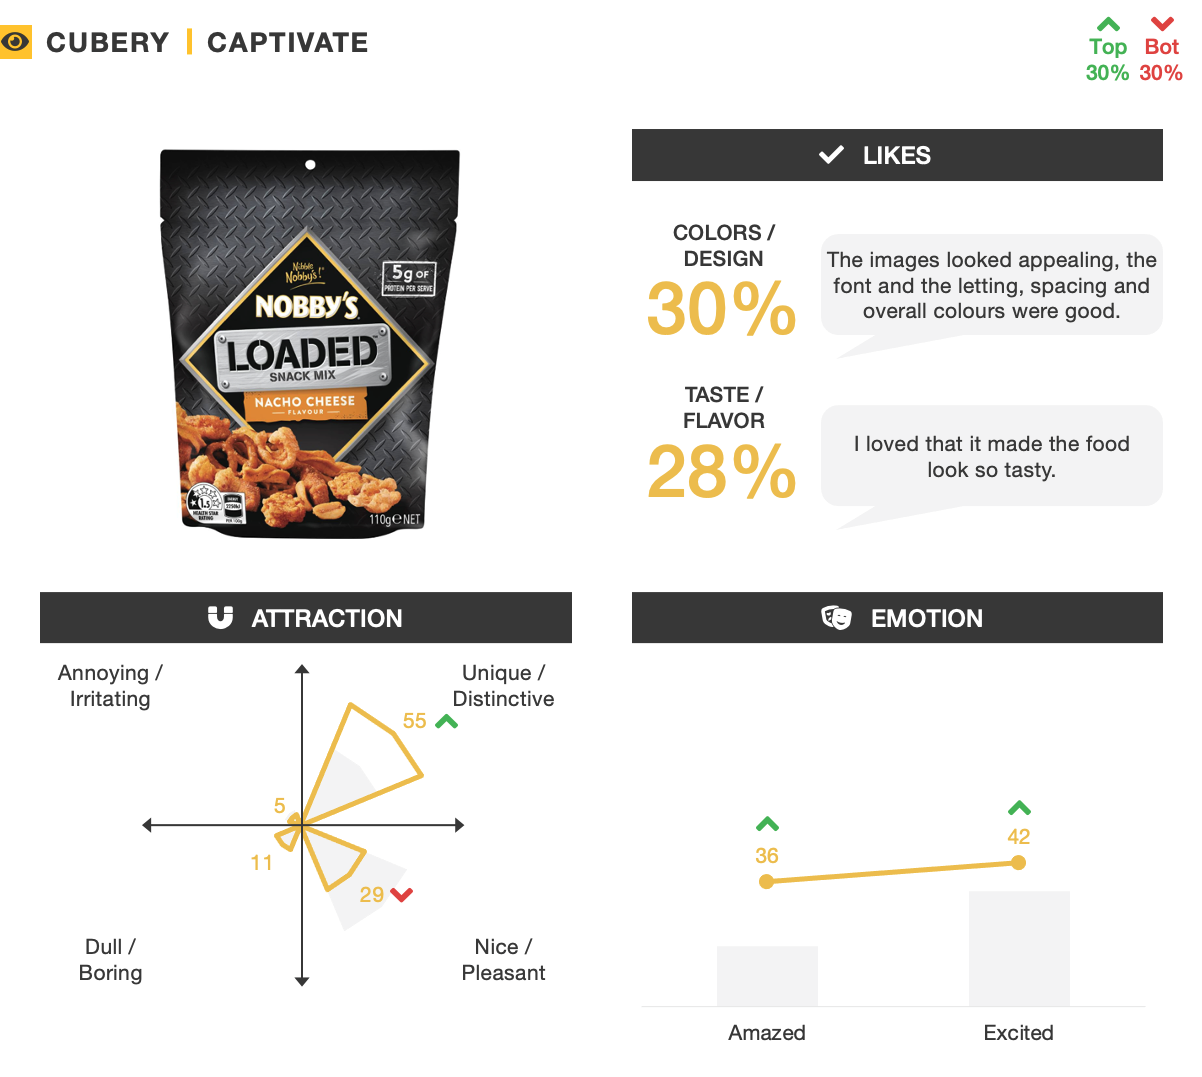 Nobby's Loaded Snack Mix - Pack Testing - Captivate